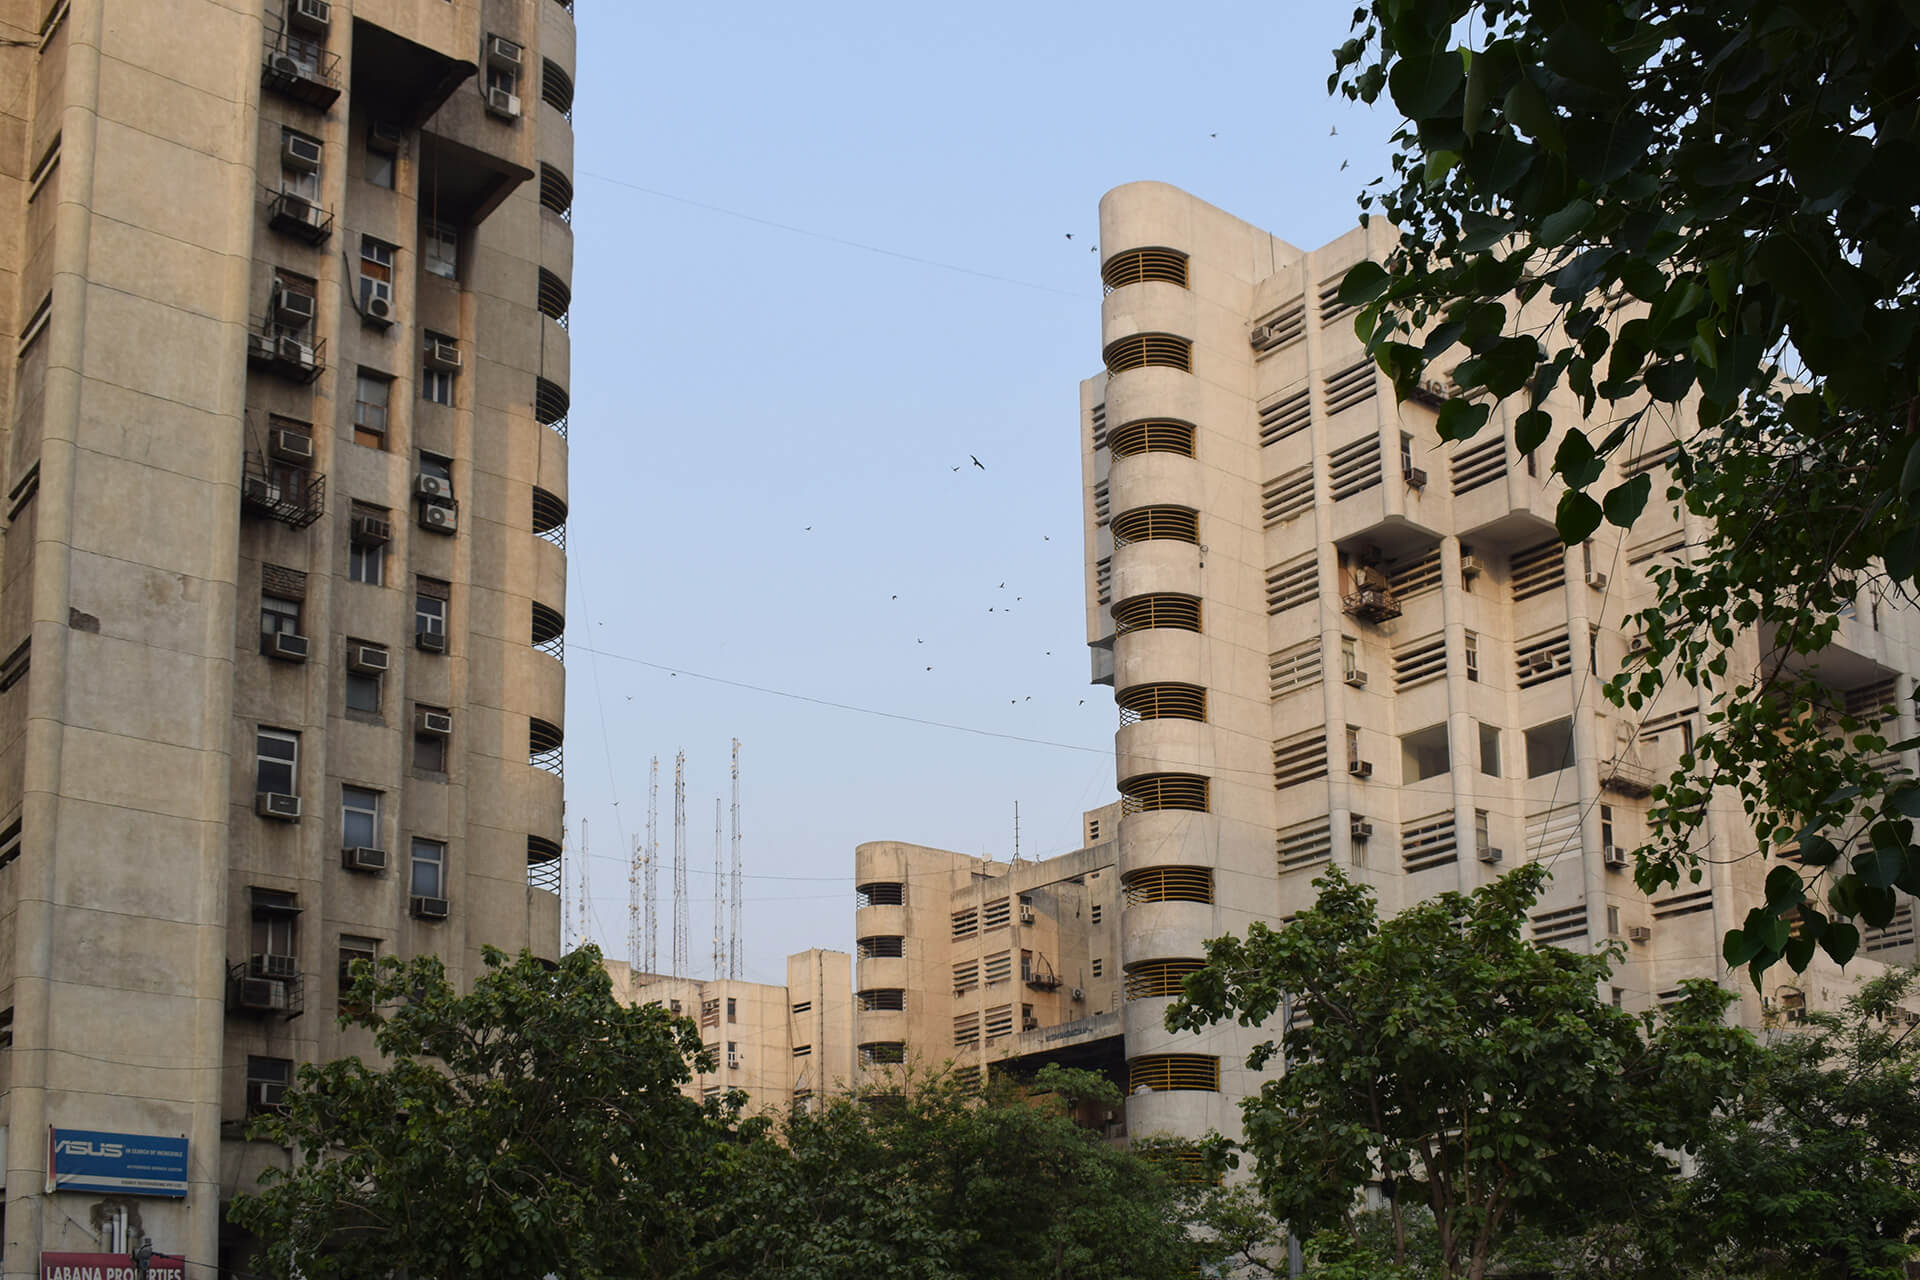 Janakpuri District Centre designed by The Design Group for DDA in 1984 | Land as public amenity | Ranjit Sabikhi | STIRworld